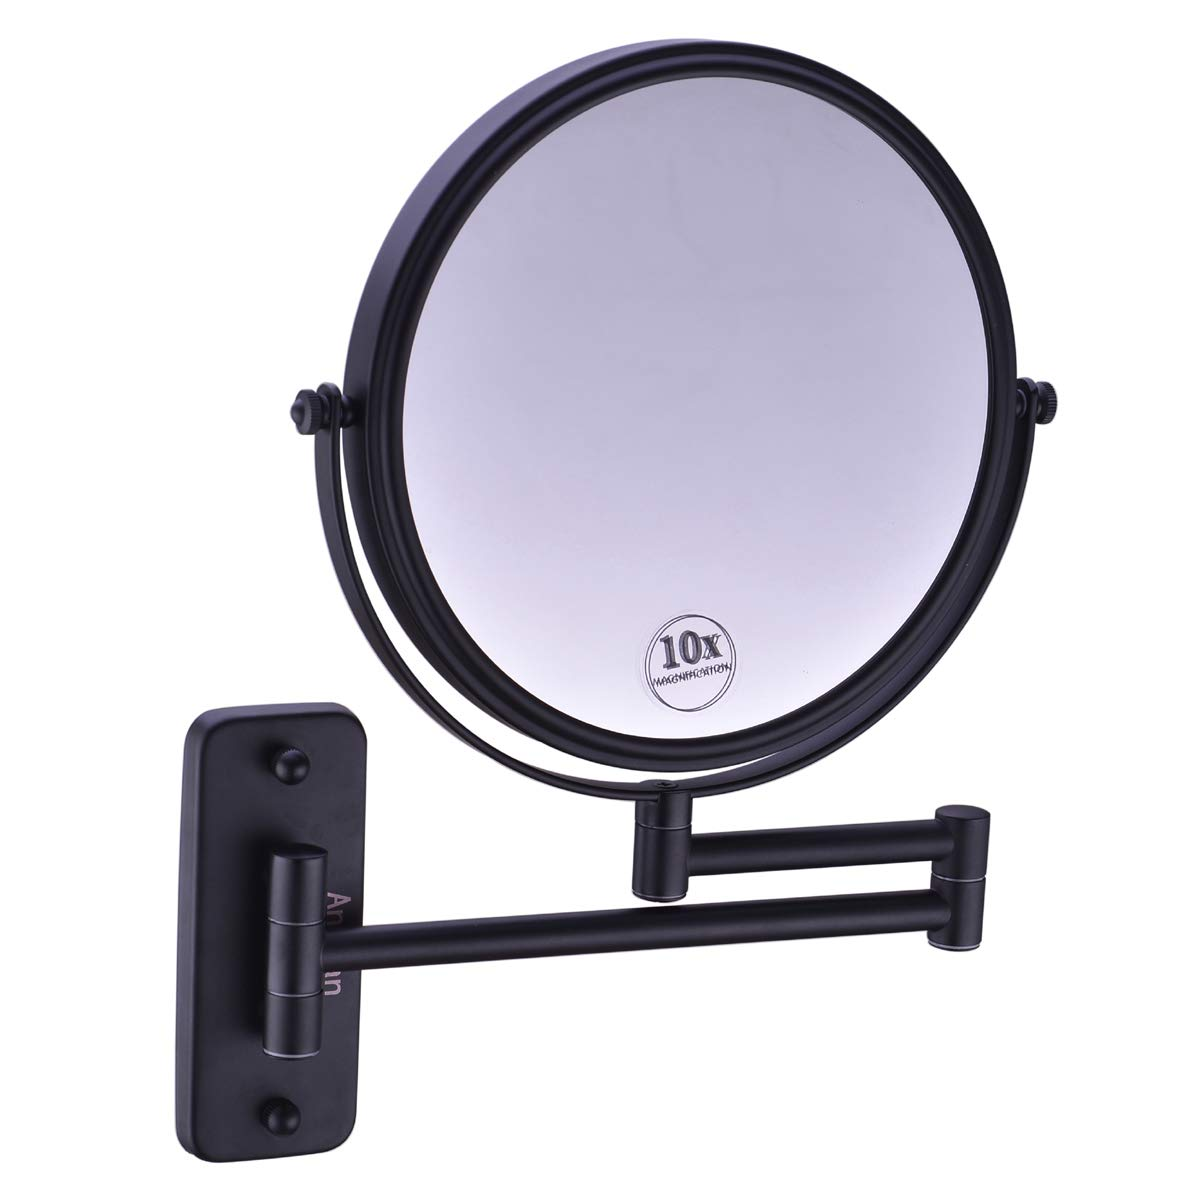 Anpean 8 Inch Double Sided Swivel Wall Mounted Makeup Mirror with 10x Magnification, Matte Black